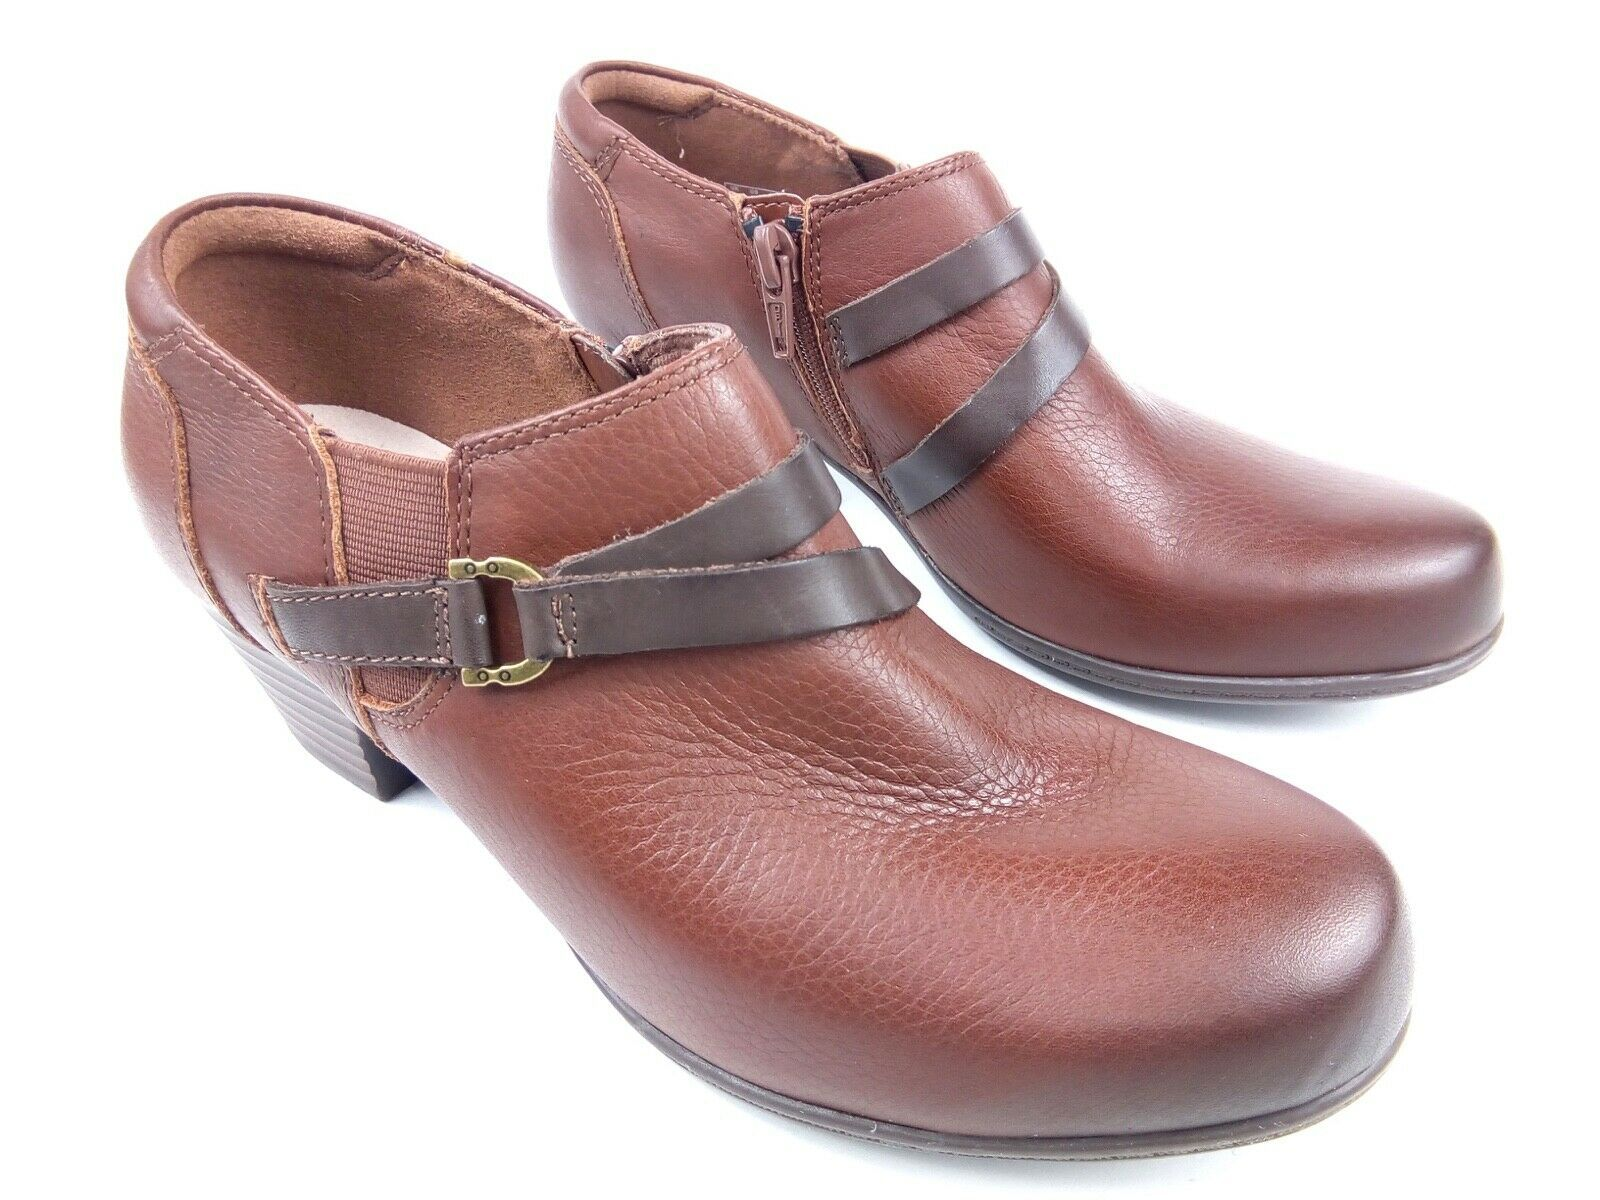 Clarks Women's Booties Collection Soft Cushion Brown Leather Ankle Boots Sz 6 image 2